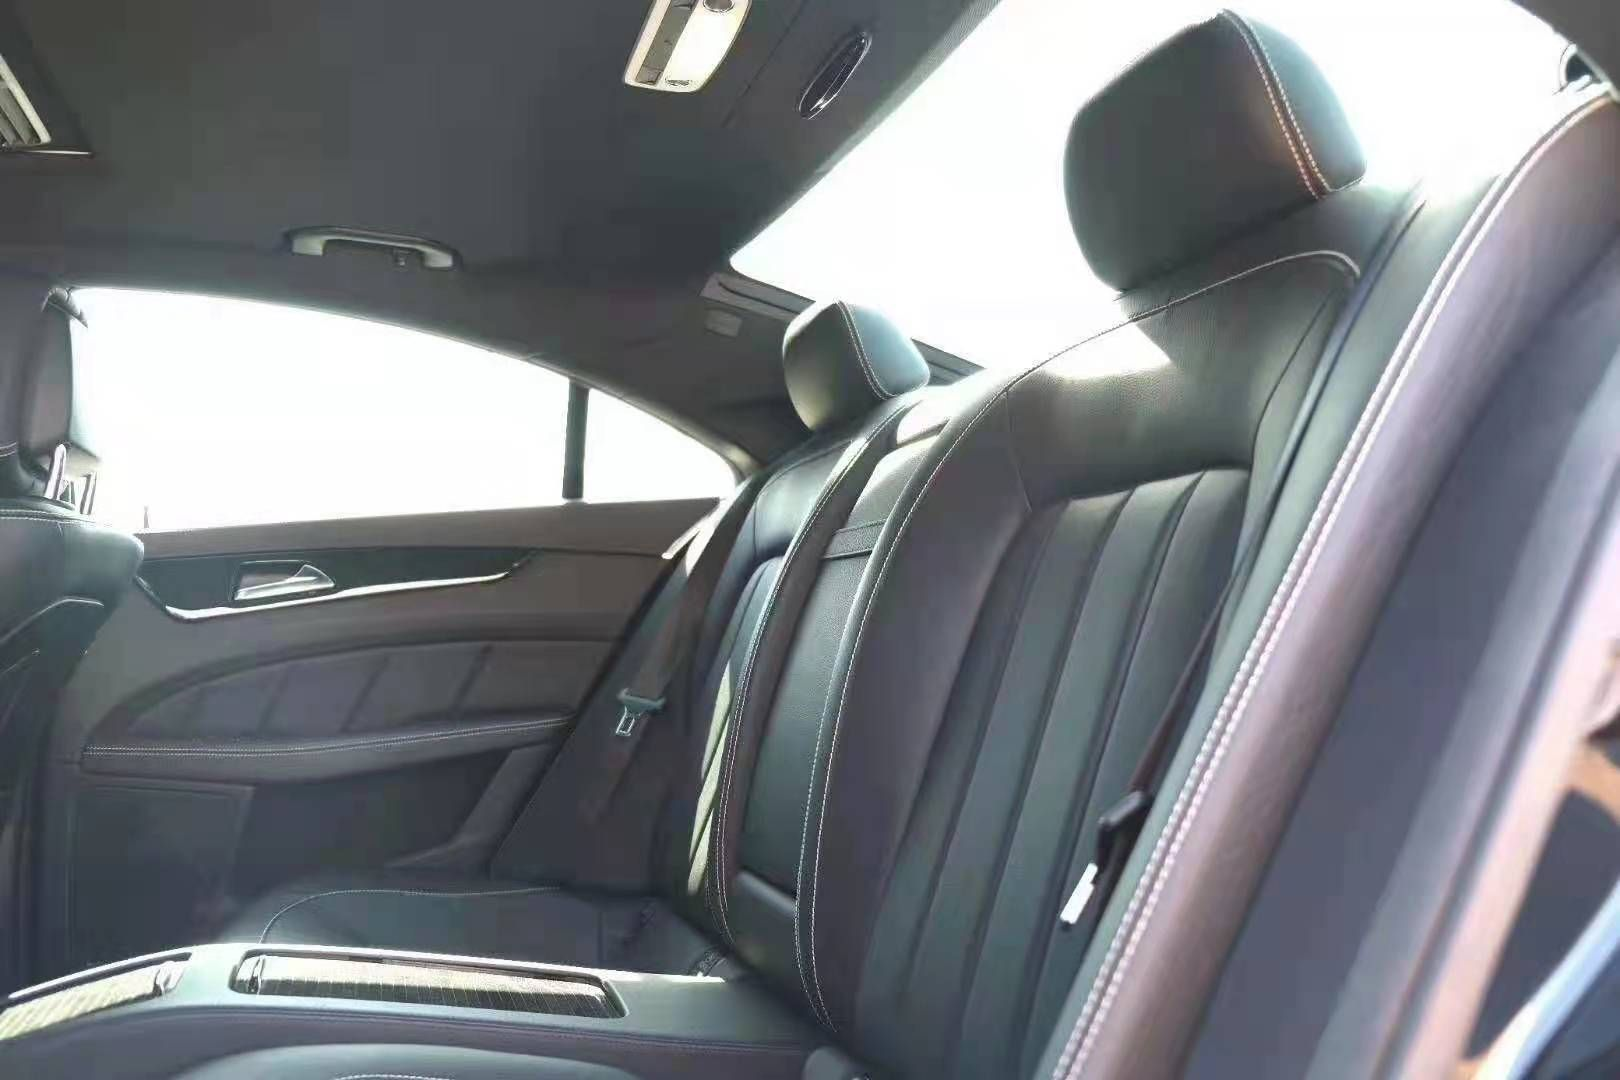 2016 Mercedes-Benz CLS-Class CLS 550 4MATIC - INFOCAR - Toronto's Most Comprehensive New and Used Auto Trading Platform